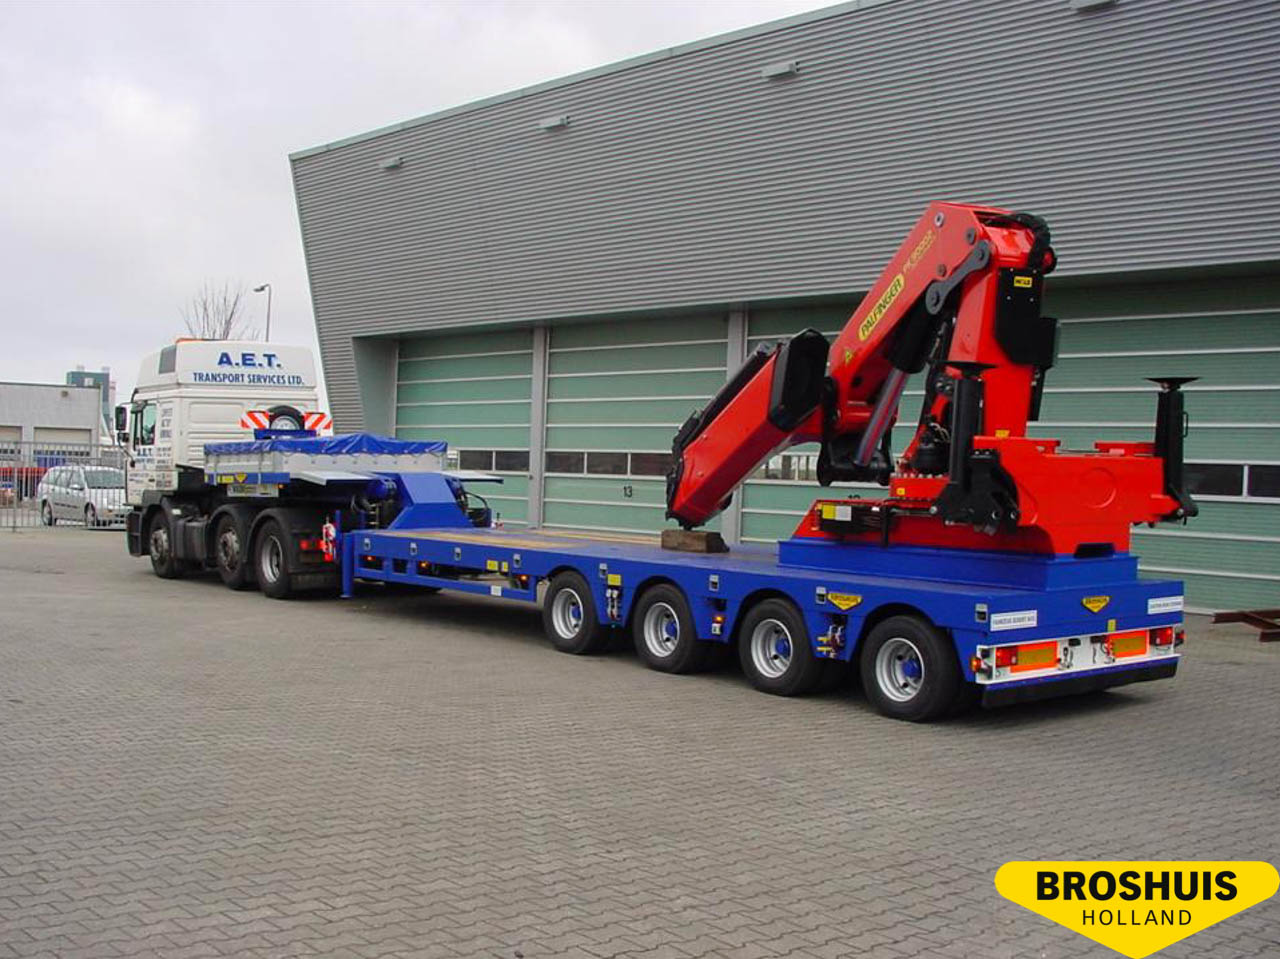 Broshuis trailers with cranes for industrial moves